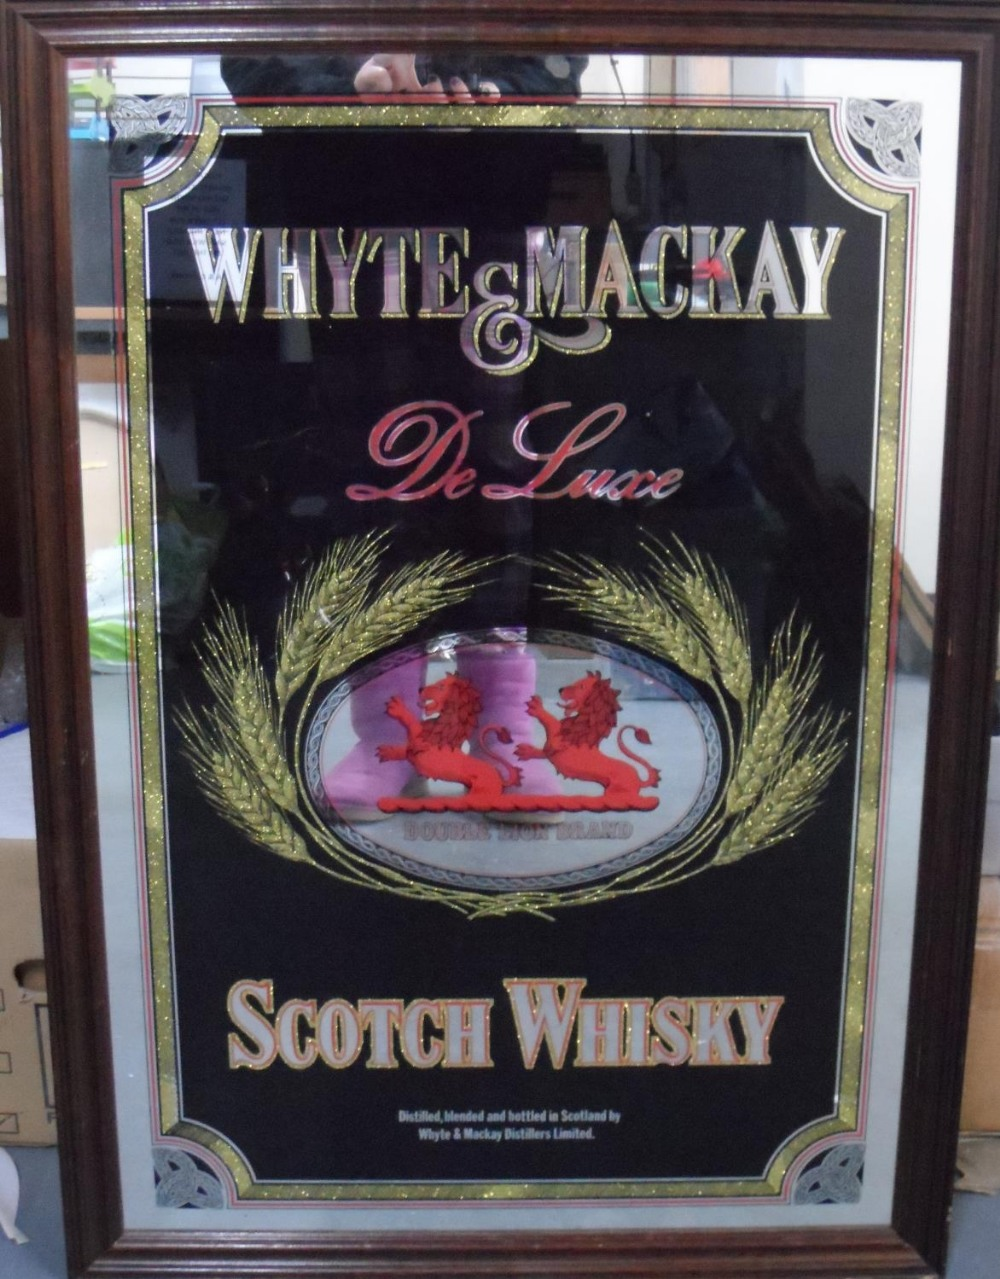 Whyte & MacKay, Scotch whiskey advertising mirror in oak frame, The mirror measures 80 x 52 cm - Image 2 of 2